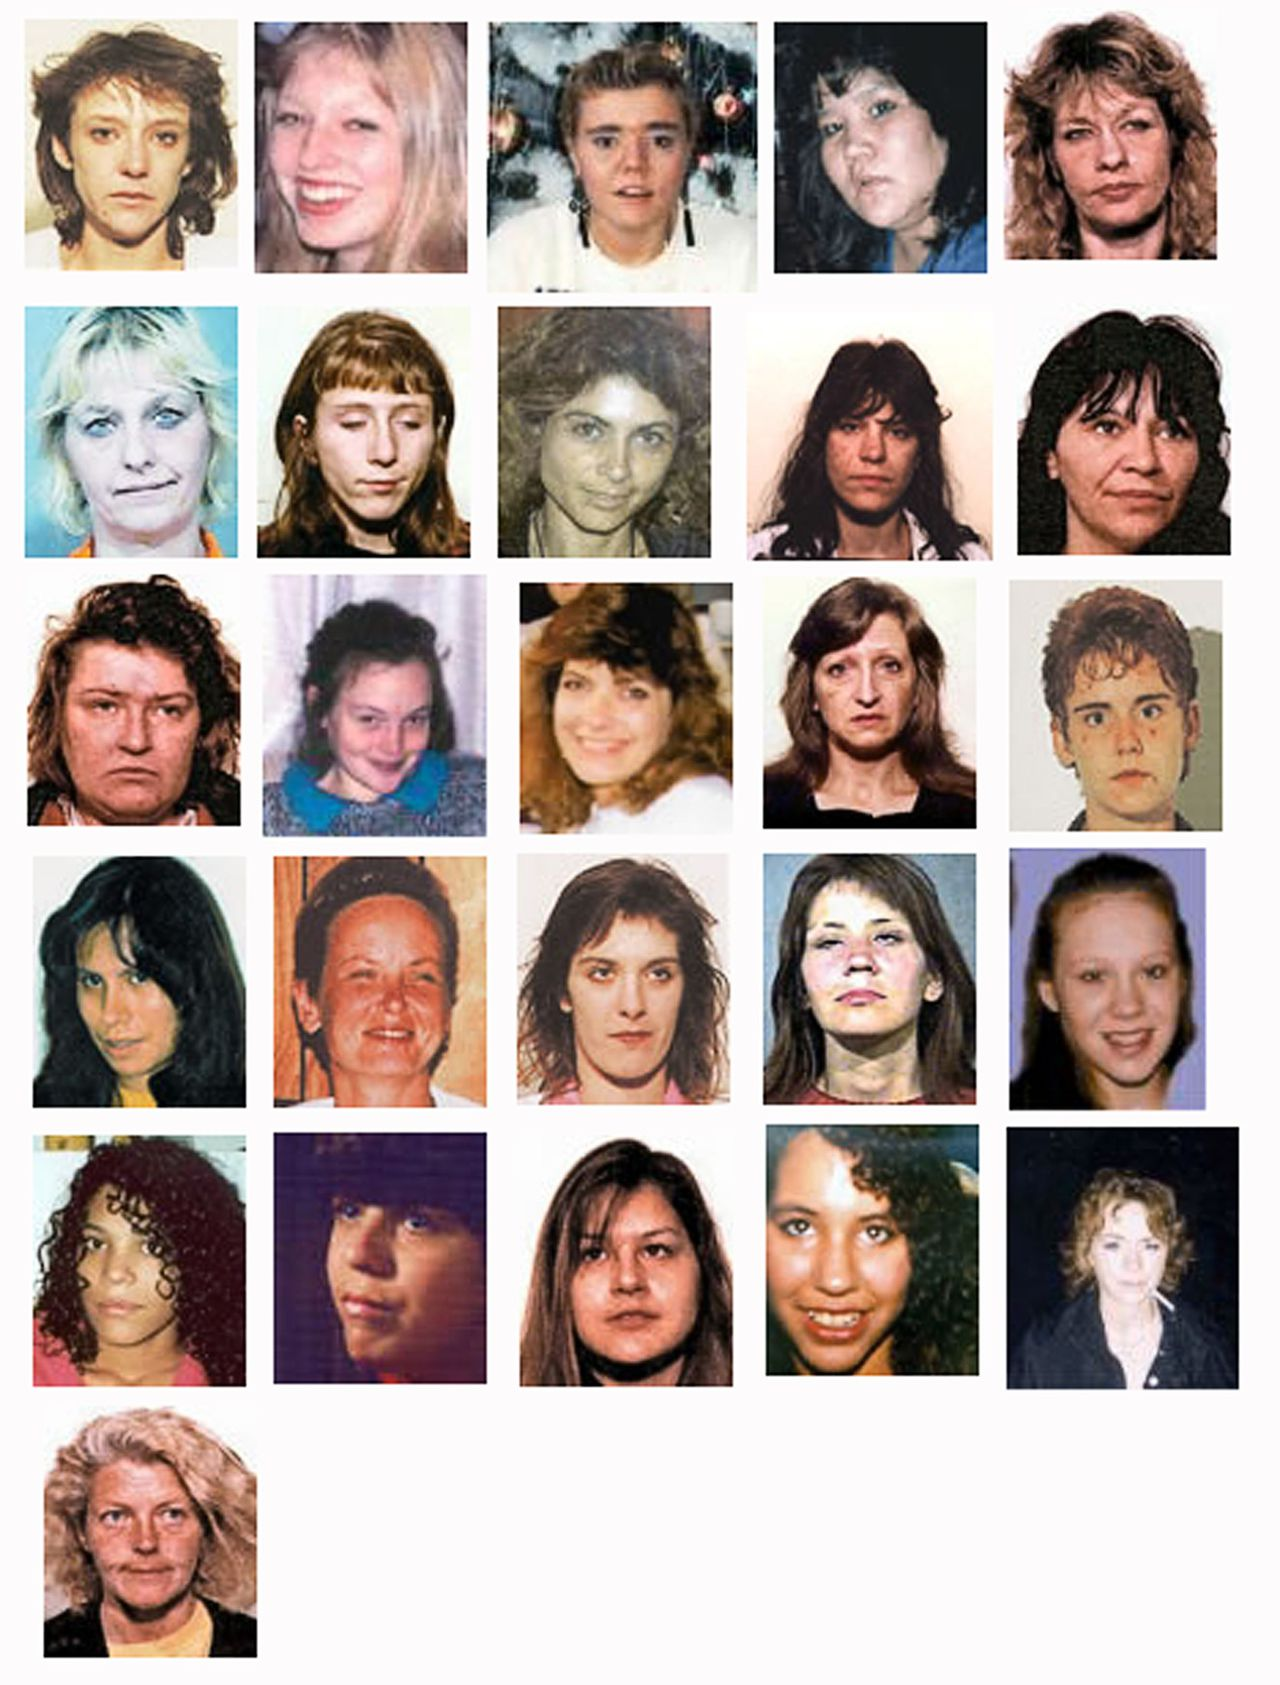 """De 26 vrouwen die vermoedelijk door Robert Pickton zijn vermoord. Boven vlnr: Andrea Borhaven, Andrea Joesbury, Angela Jardine, Brenda Wolfe, Cindy Feliks, Debra Jones, Diana Melnick, Diane Rock, Cara Ellis, Georgina Papin, Heather Chinnock, Heather Bottomley, Helen Hallmark, Inga Hall, Jacqueline McDonell, Jennifer Furminger, Kerry Koski, Marnie Frey, Mona Wilson, Patricia Johnson, Sarah de Vries, Sereena Abostway, Sherry Irving, Tanya Holyk, Tiffany Drew en Wendy Crawford. Foto Reuters The 26 women accused Canadian serial killer Robert """"Willie"""" Pickton is charged with the murders of are shown in these undated photos. The victims are (top row L-R) Andrea Borhaven, Andrea Joesbury, Angela Jardine, Brenda Wolfe, Cindy Feliks, (2nd row L-R) Debra Jones, Diana Melnick, Diane Rock, Cara Ellis, Georgina Papin, (third row L-R) Heather Chinnock, Heather Bottomley, Helen Hallmark, Inga Hall, Jacqueline McDonell, (fourth row L-R) Jennifer Furminger, Kerry Koski, Marnie Frey, Mona Wilson, Patricia Johnson, Fifth Row L - R - Sarah de Vries, Sereena Abostway, Sherry Irving, Tanya Holyk, Tiffany Drew and Wendy Crawford. Arguments in the trial for six of the 26 murder charges filed against Pickton will start January 22, two weeks later than scheduled, and nearly five years after he was arrested in a case that is feared linked to the disappearance more than 60 women. REUTERS/Handout (CANADA)"""